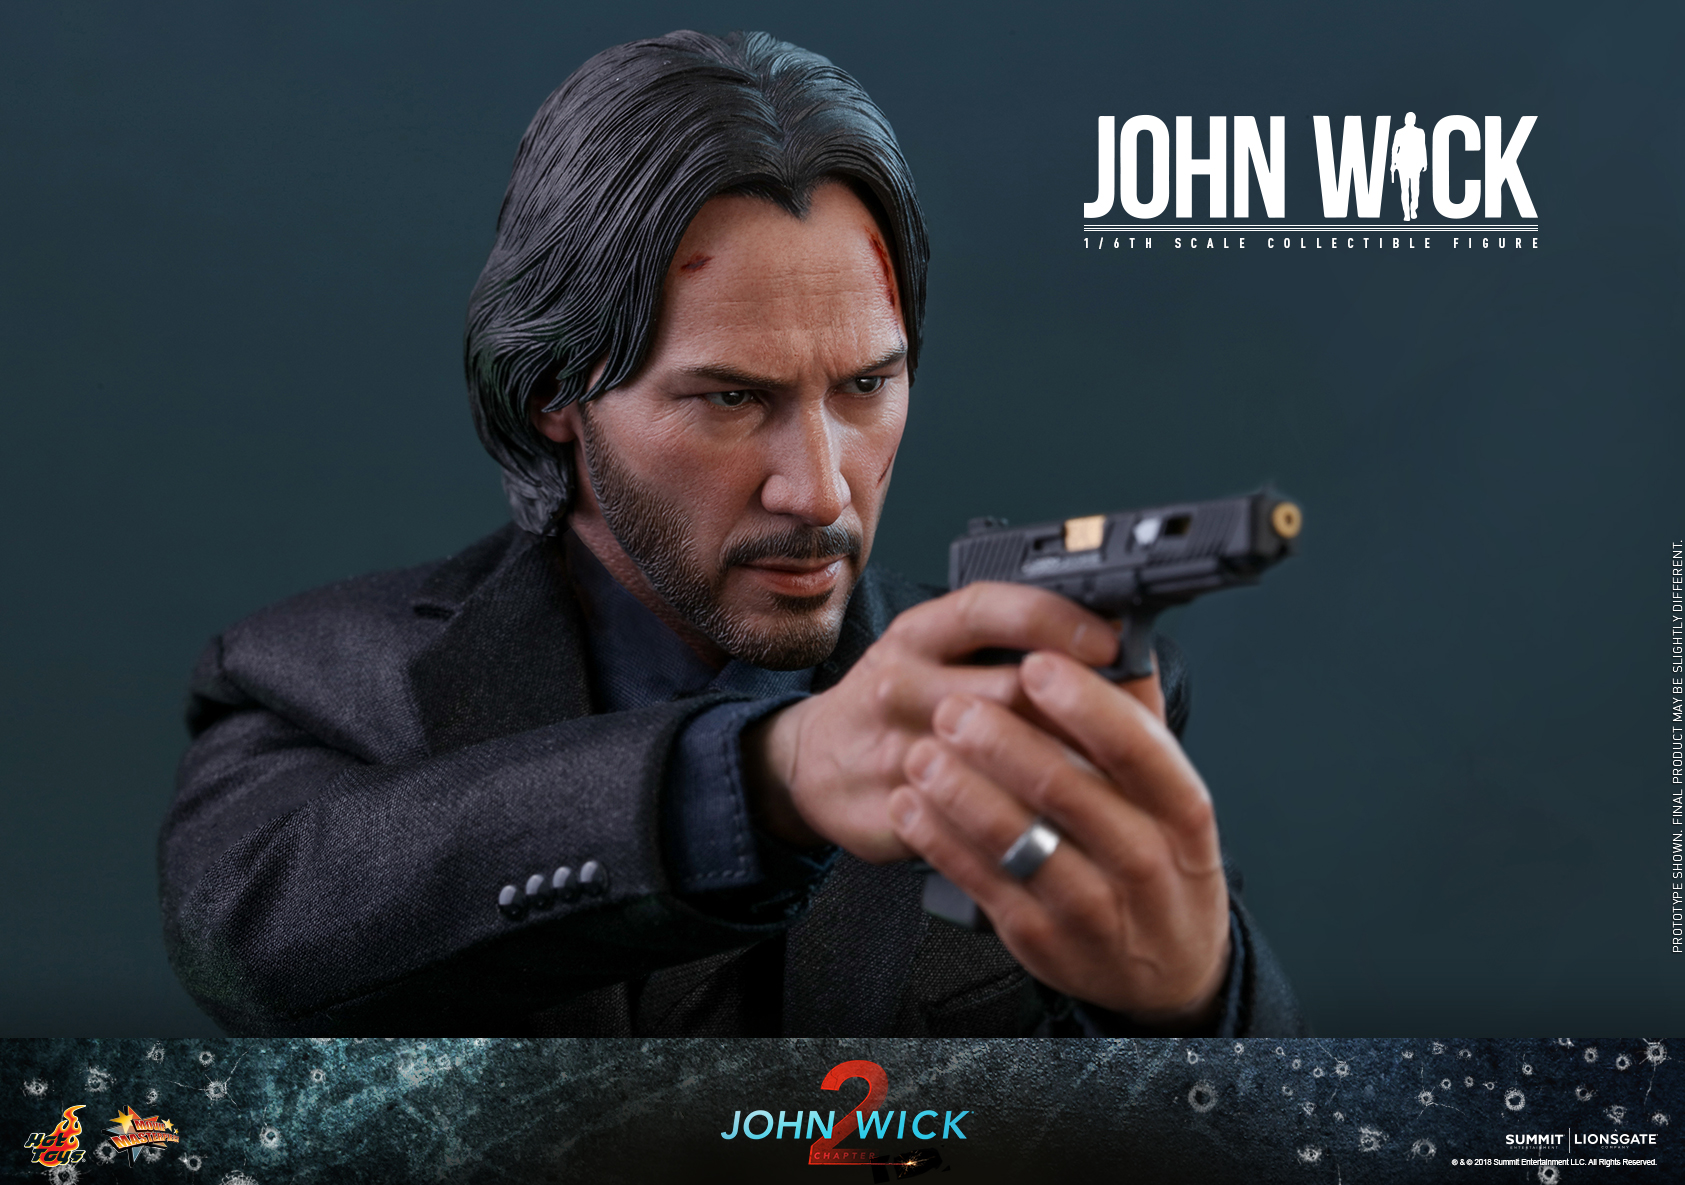 John Wick gets a Movie Masterpiece Series collectible figure